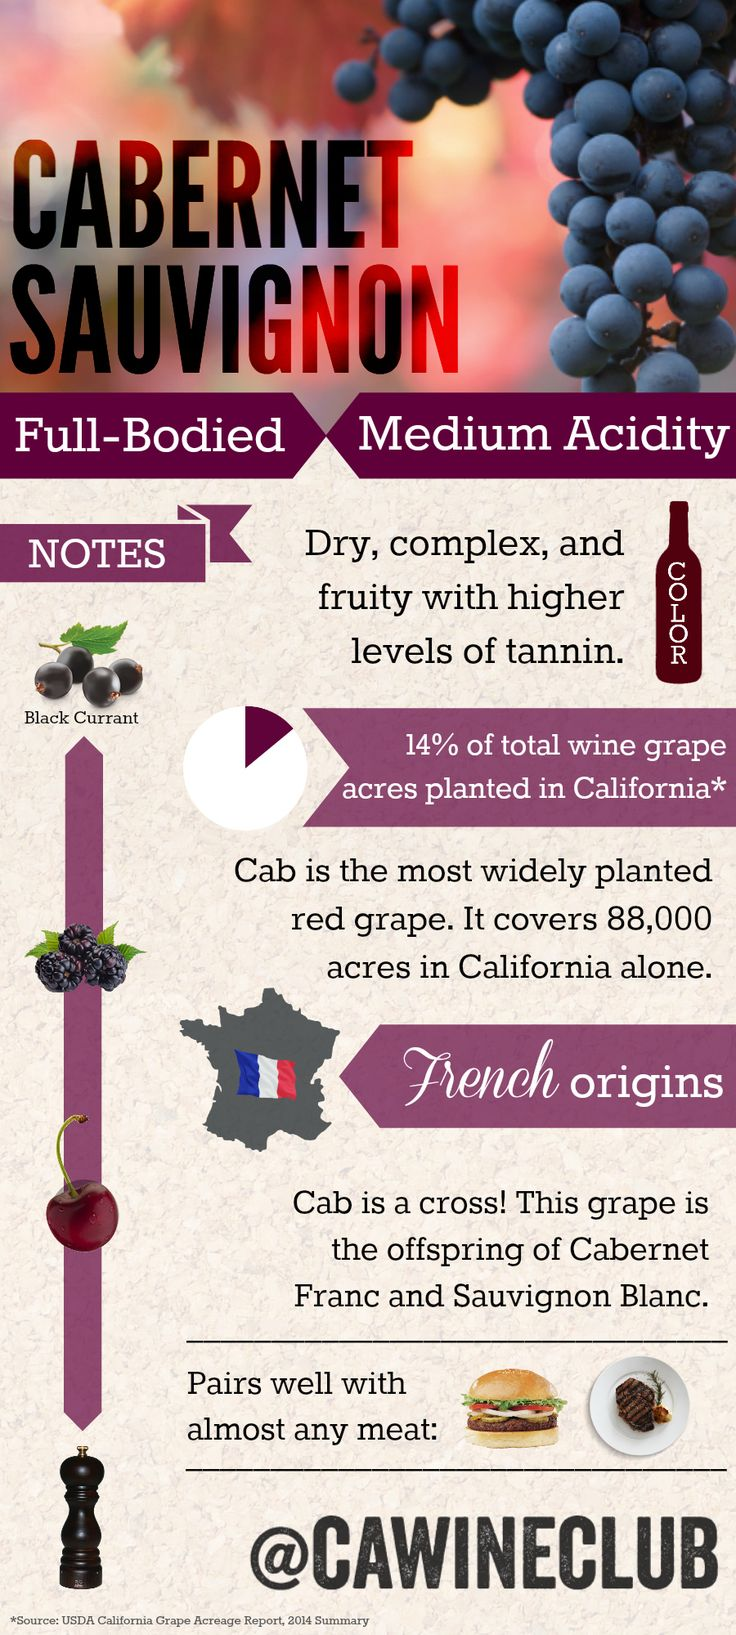 Get the facts on Cabernet Sauvignon #wine #winefacts #cabernetsauvignon…